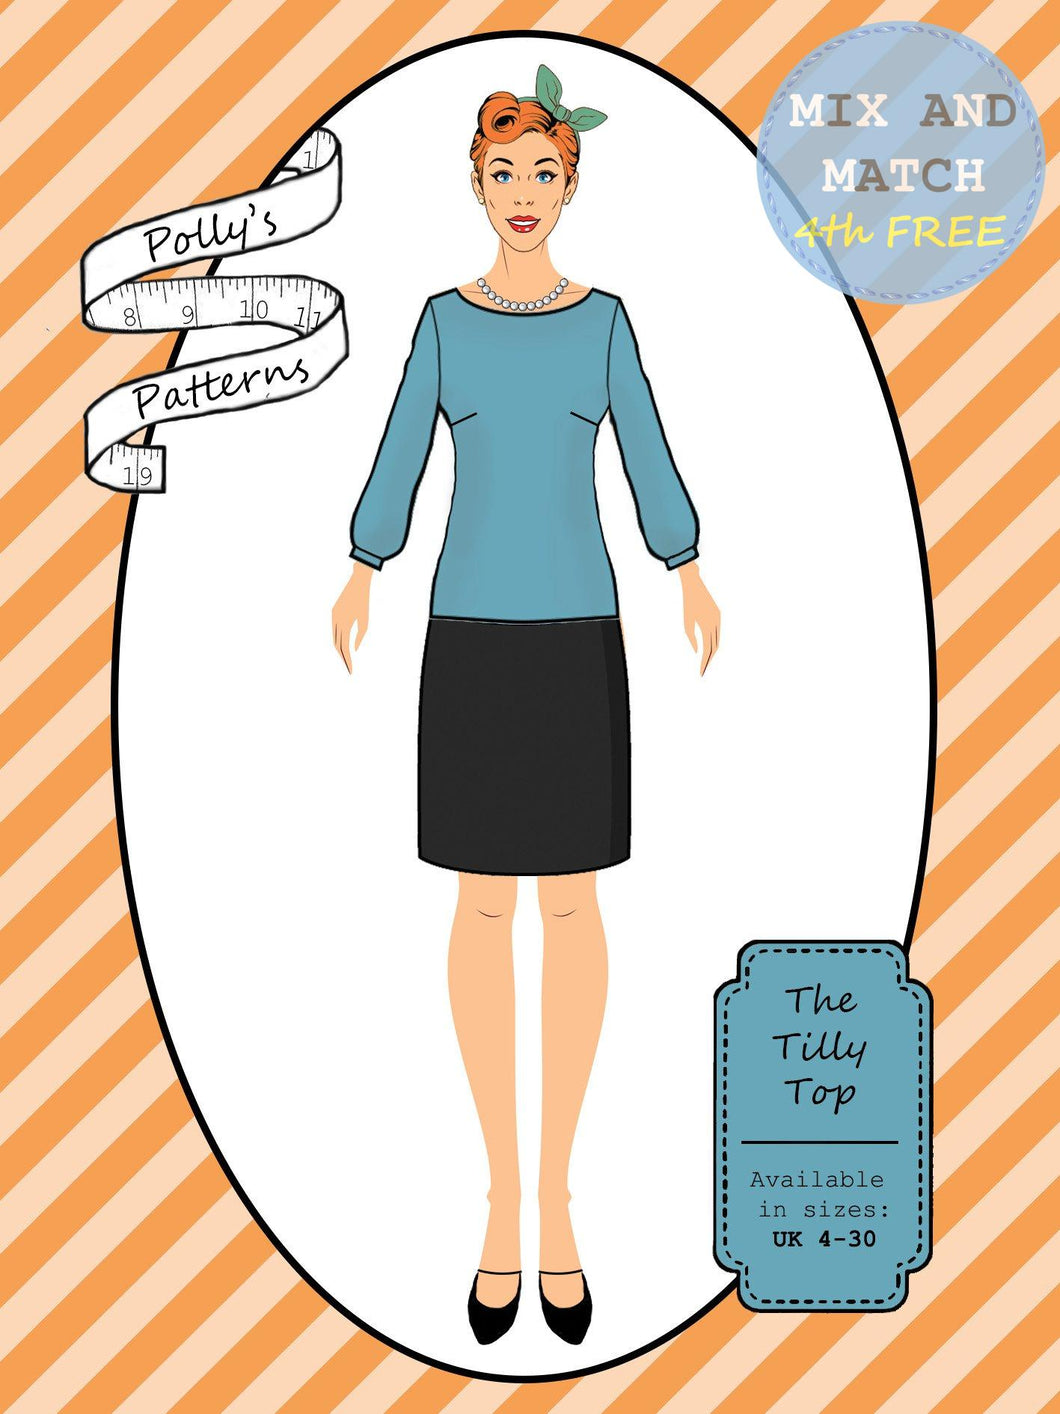 Polly's patterns - The Tilly Top - Pattern Shop